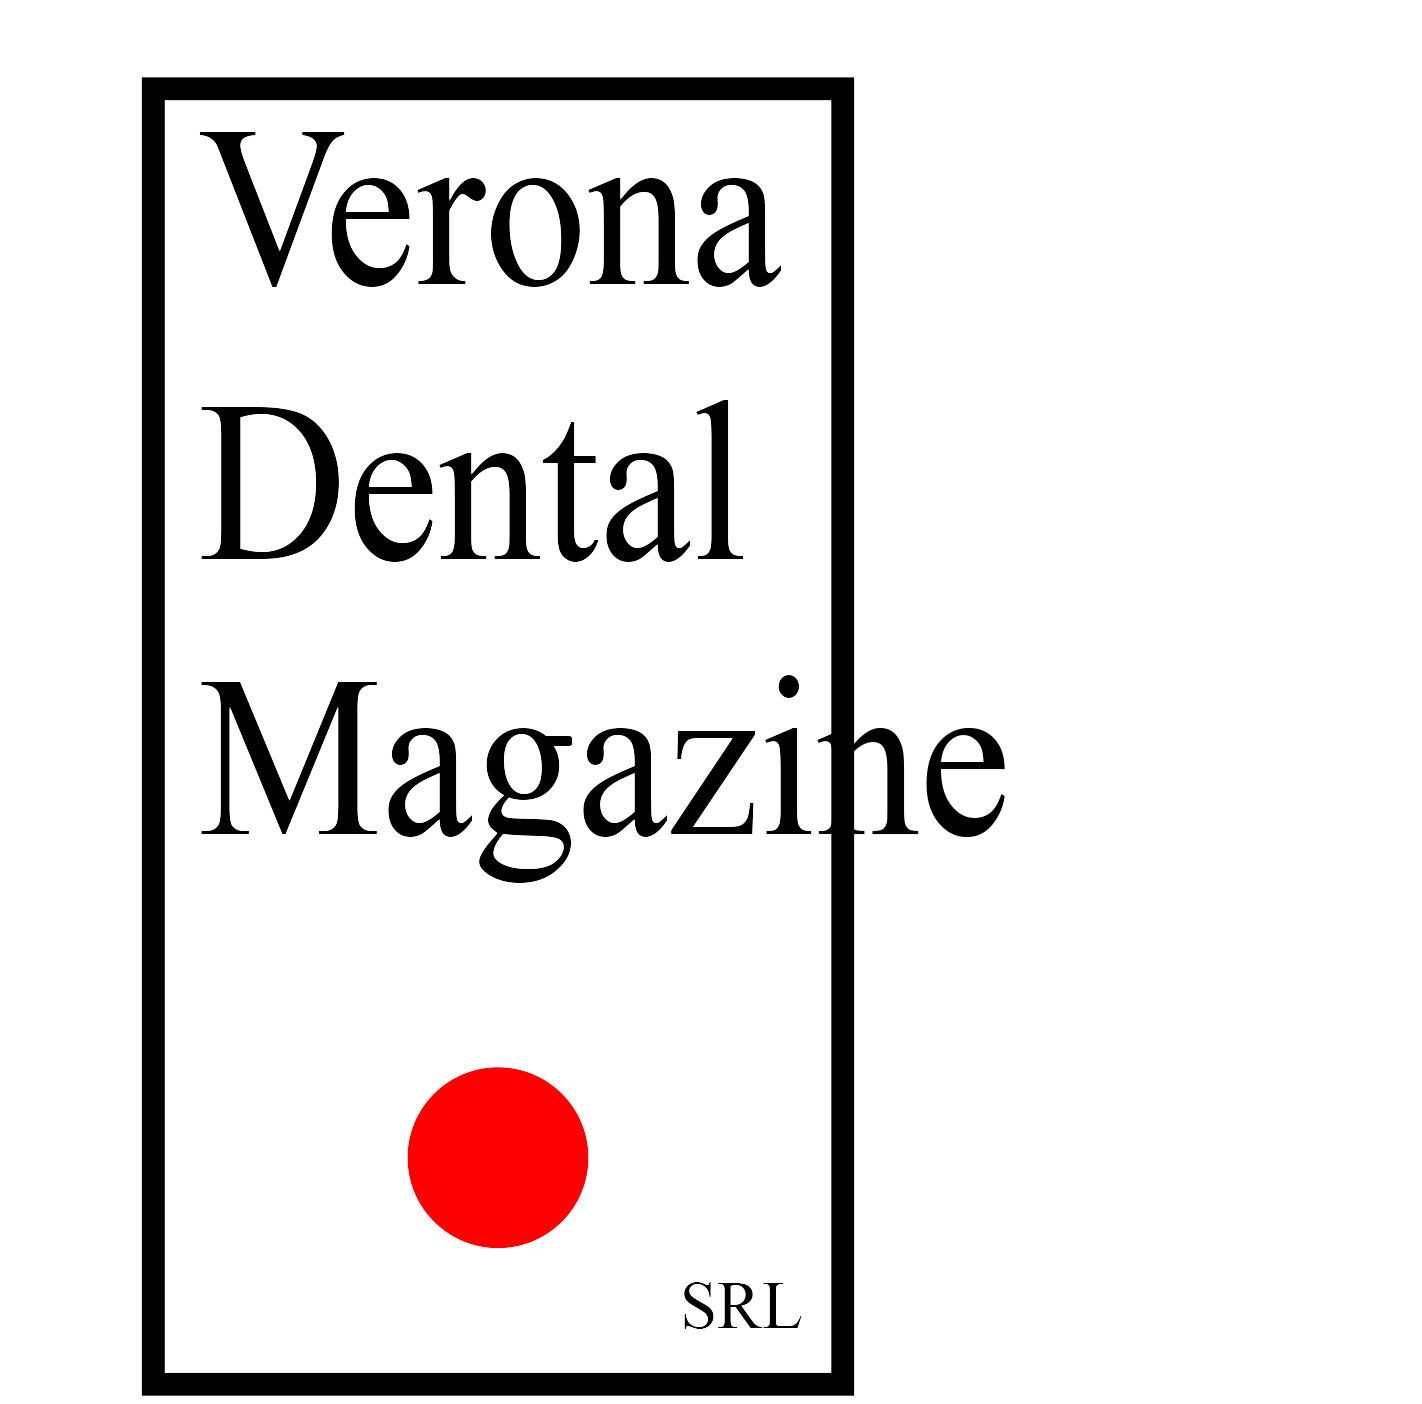 Verona Dental Magazine